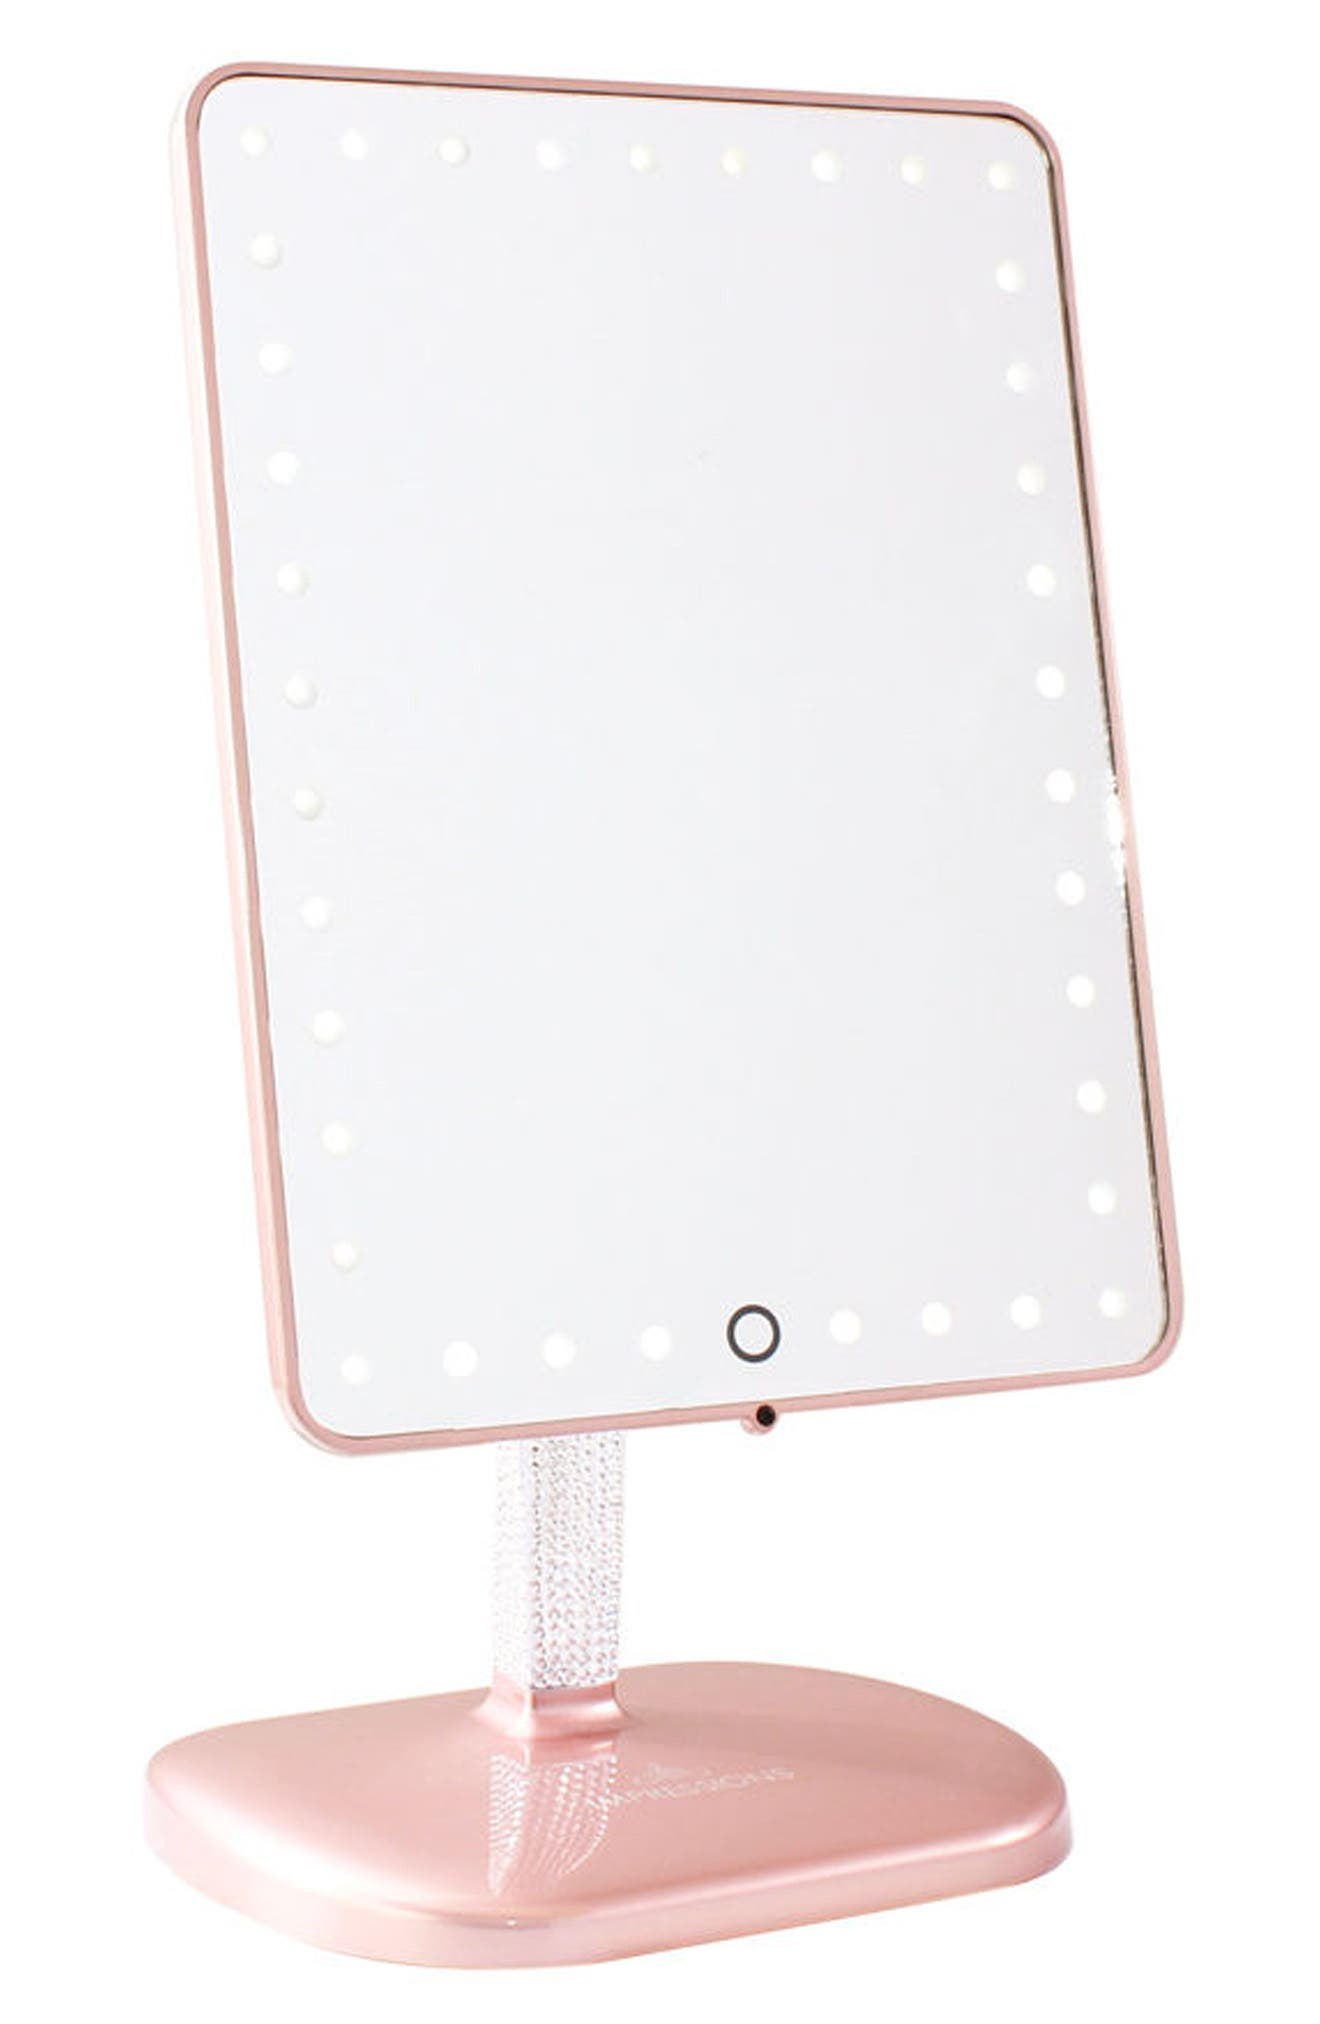 Bling Touch Pro LED Makeup Mirror with Bluetooth<sup>®</sup> Audio & Speakerphone,                         Main,                         color, ROSE GOLD BLING EDITION